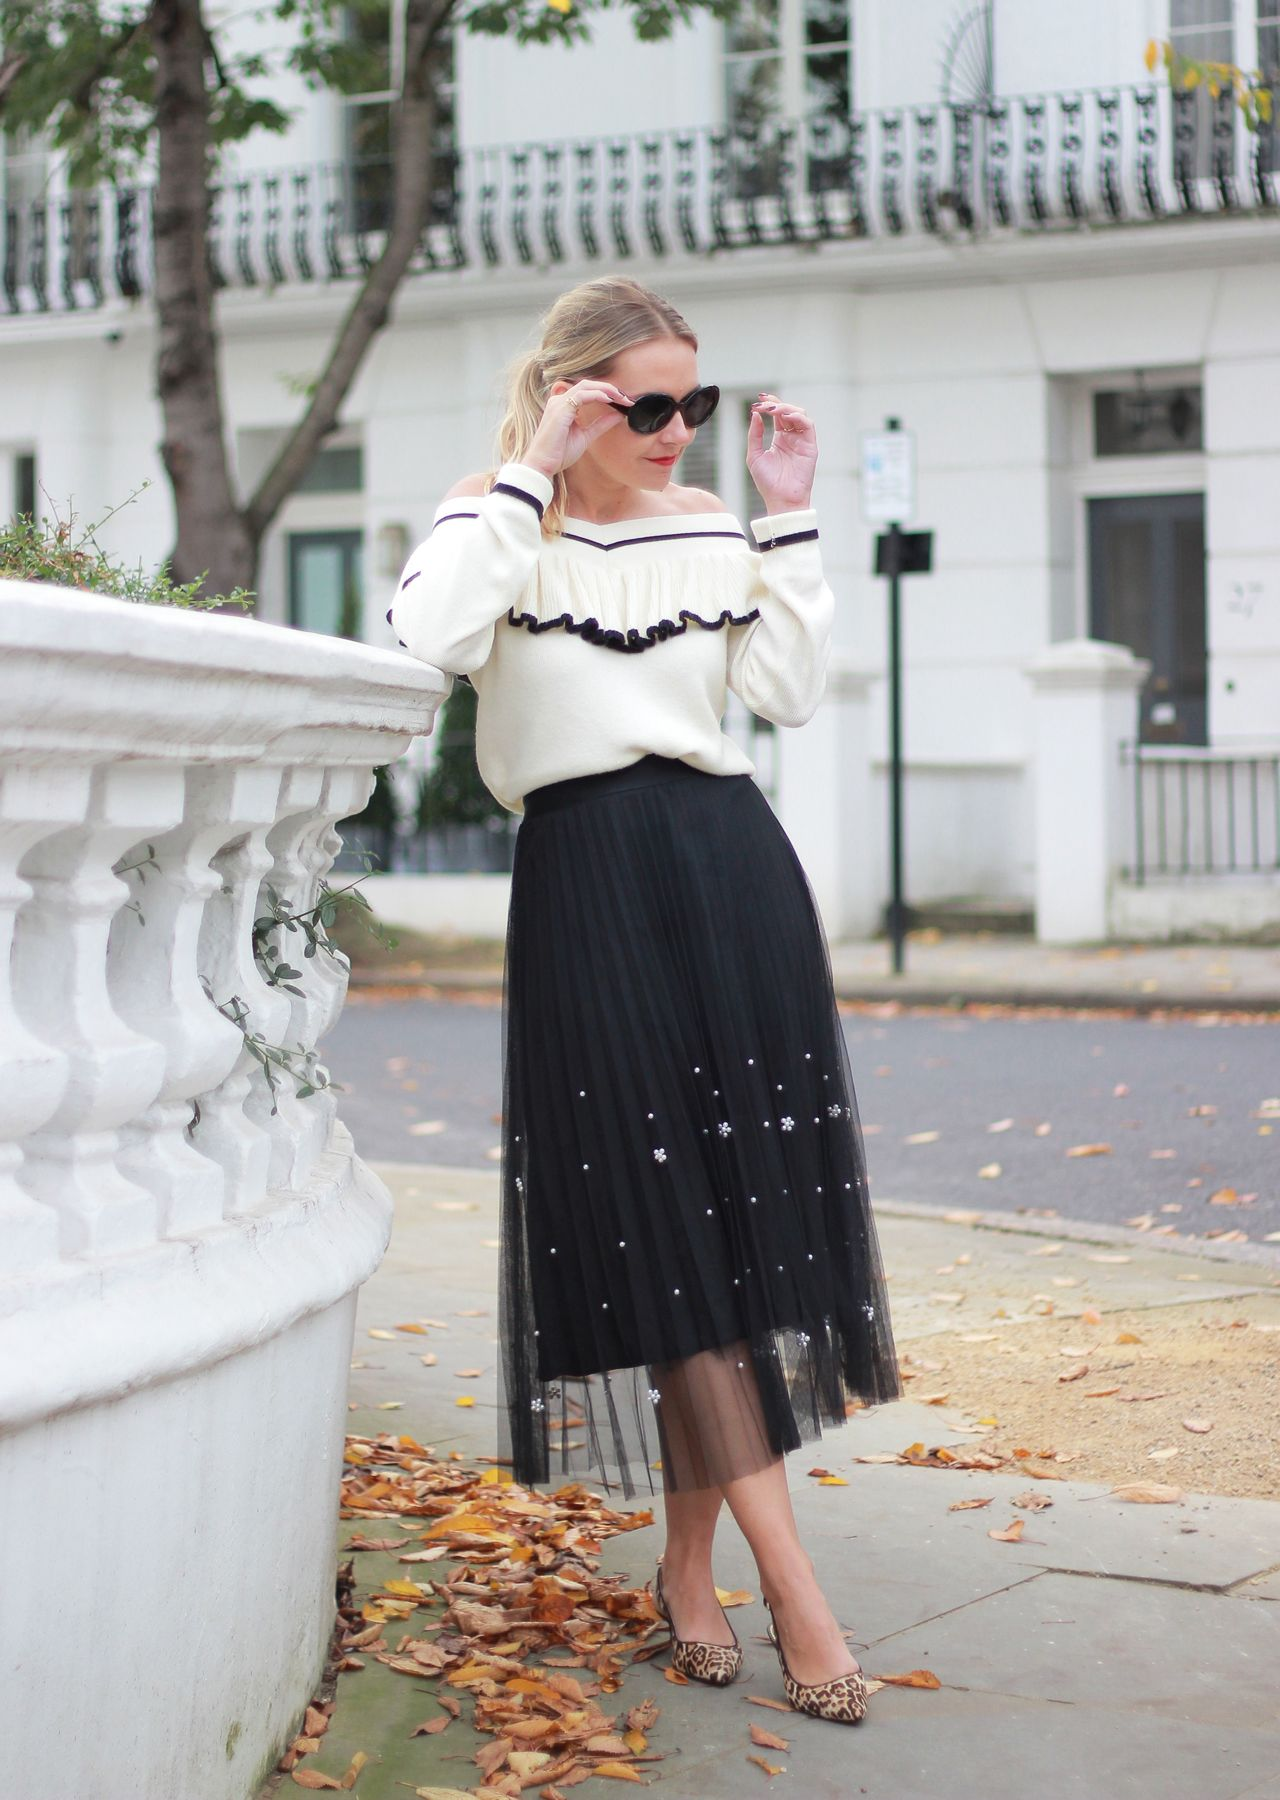 0964f7eb25 The Steele Maiden: Black and White Holiday Style - Anthropologie Pearl  Tulle Skirt and Off the Shoulder Sweater